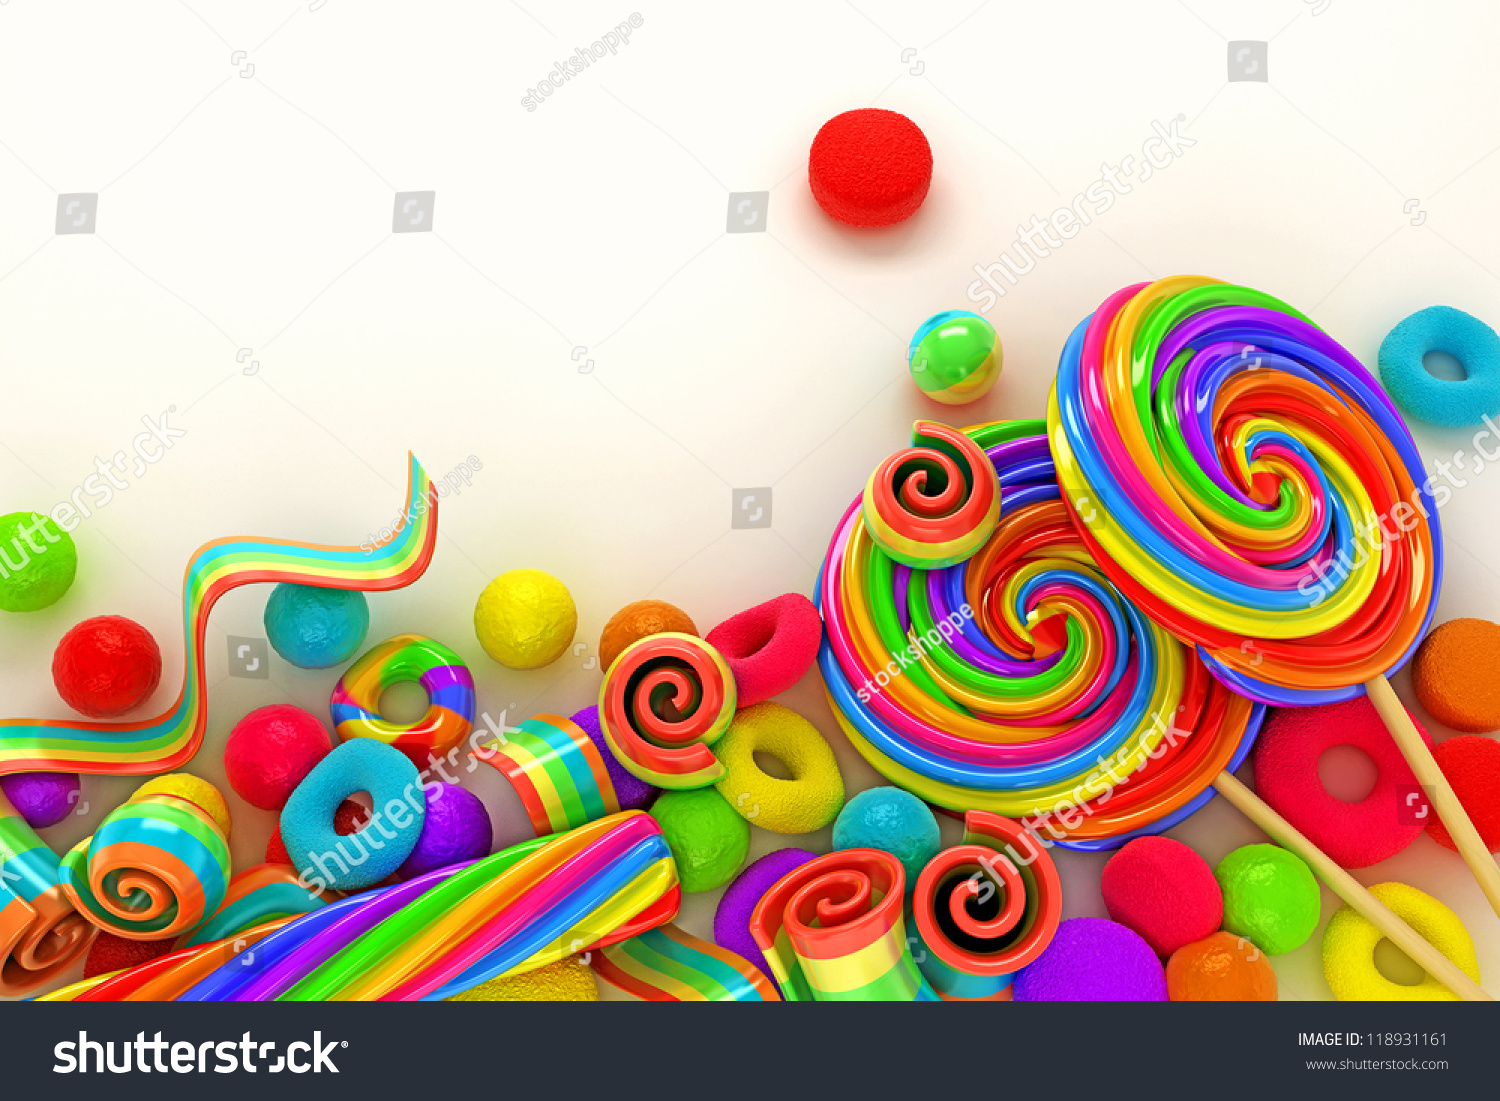 Illustration Colorful Candy Wallpaper Stock Illustration 118931161